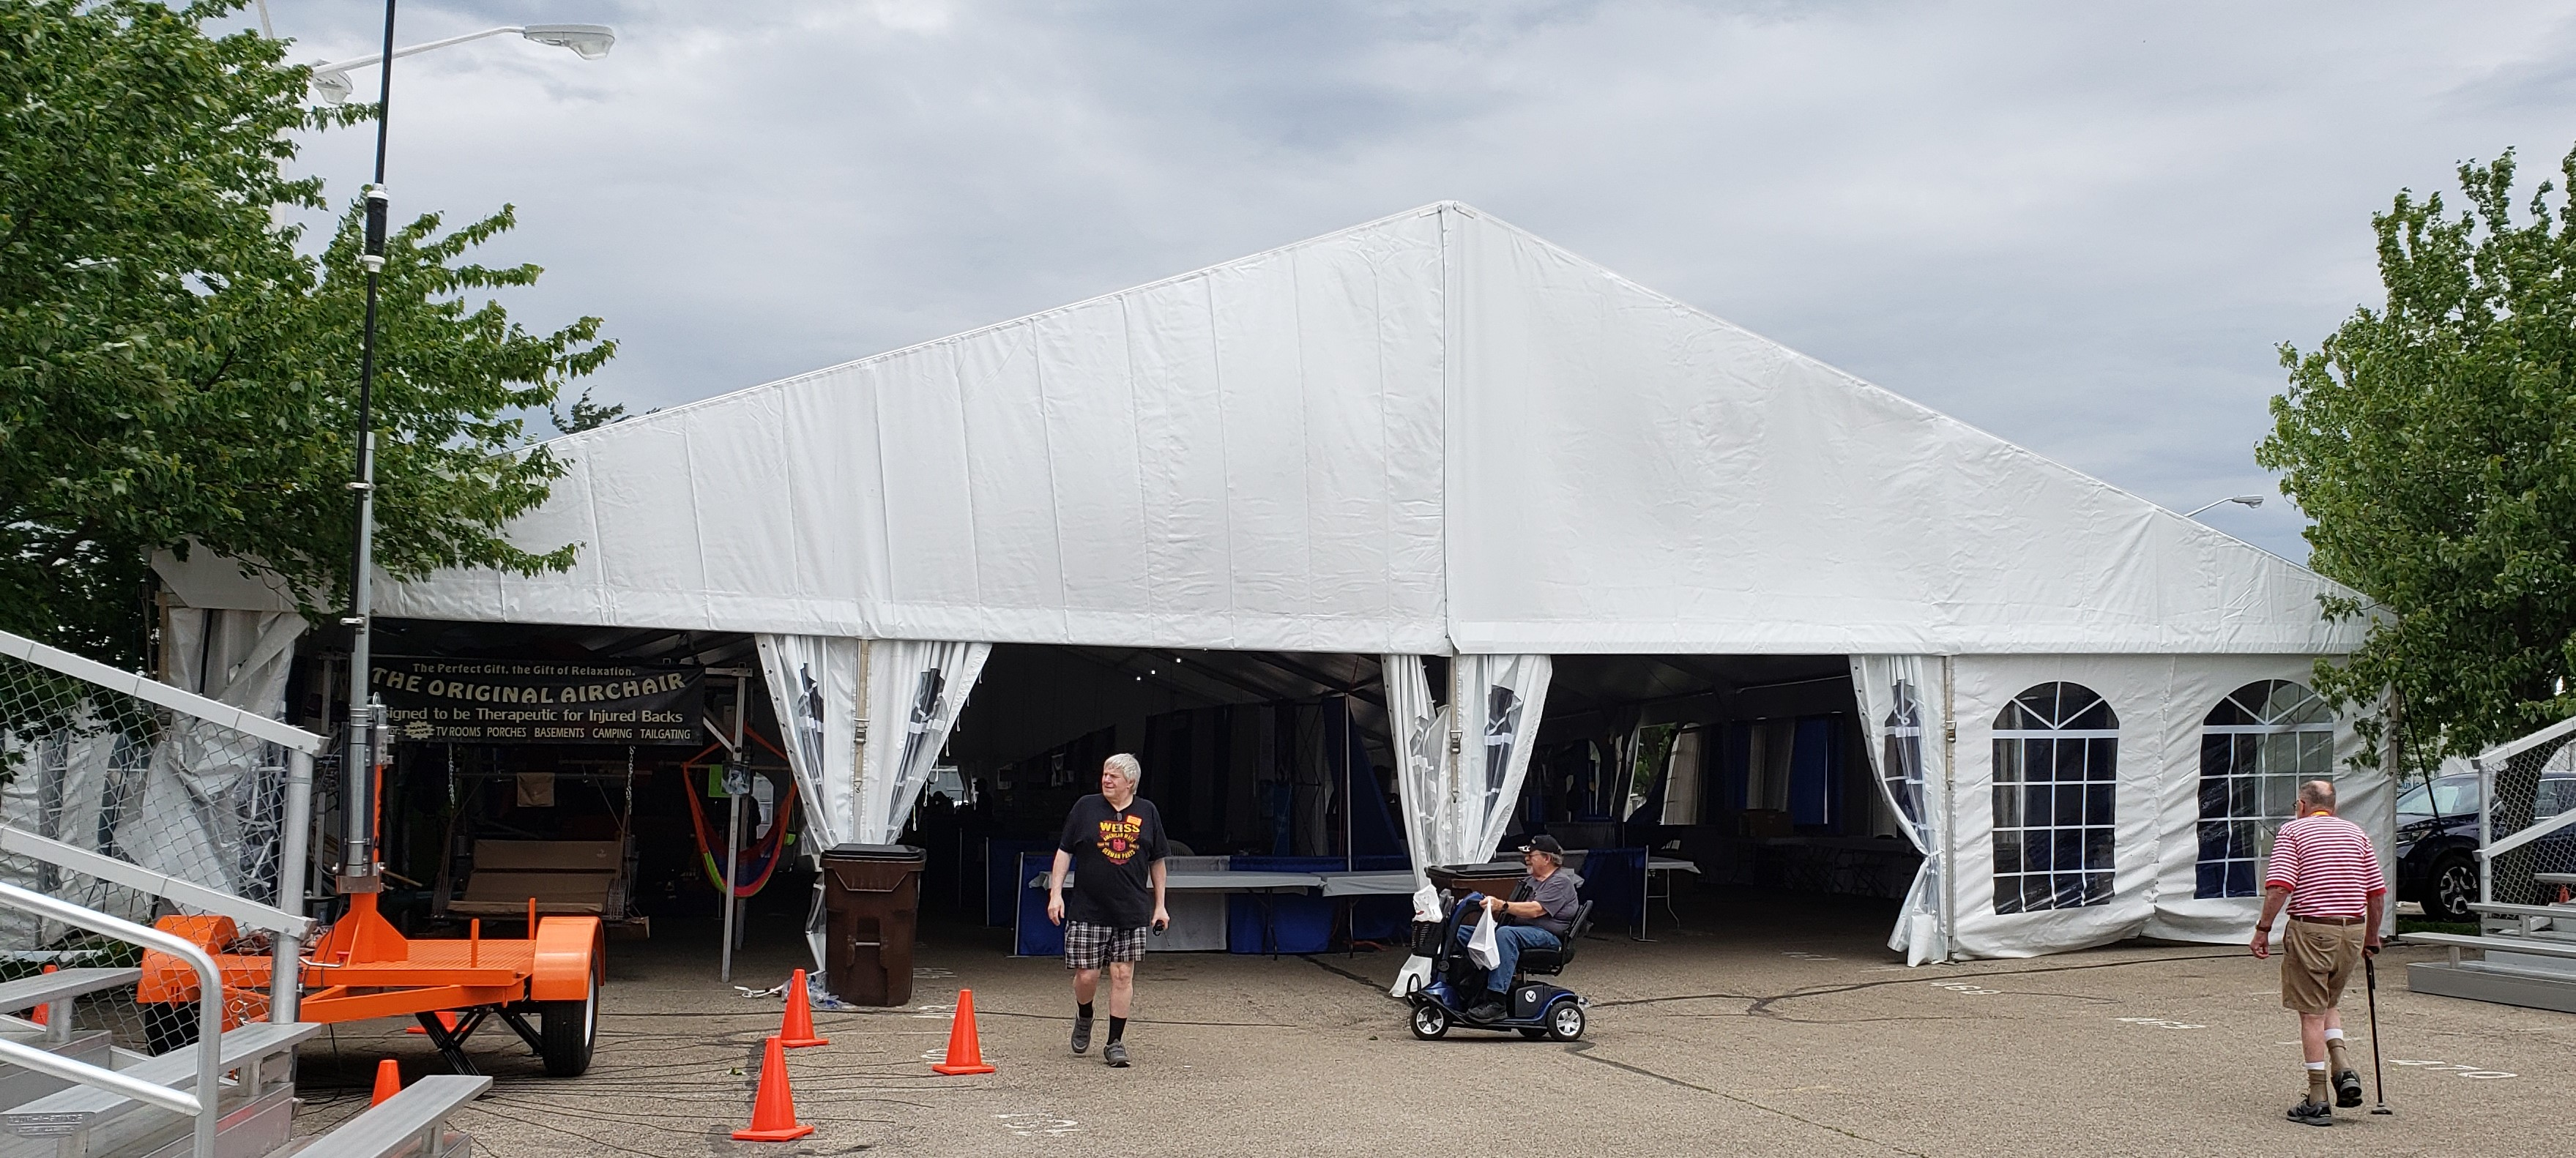 Photo of Hamvention 2019 Watts Tent Building where the Handiham Booth was housed.